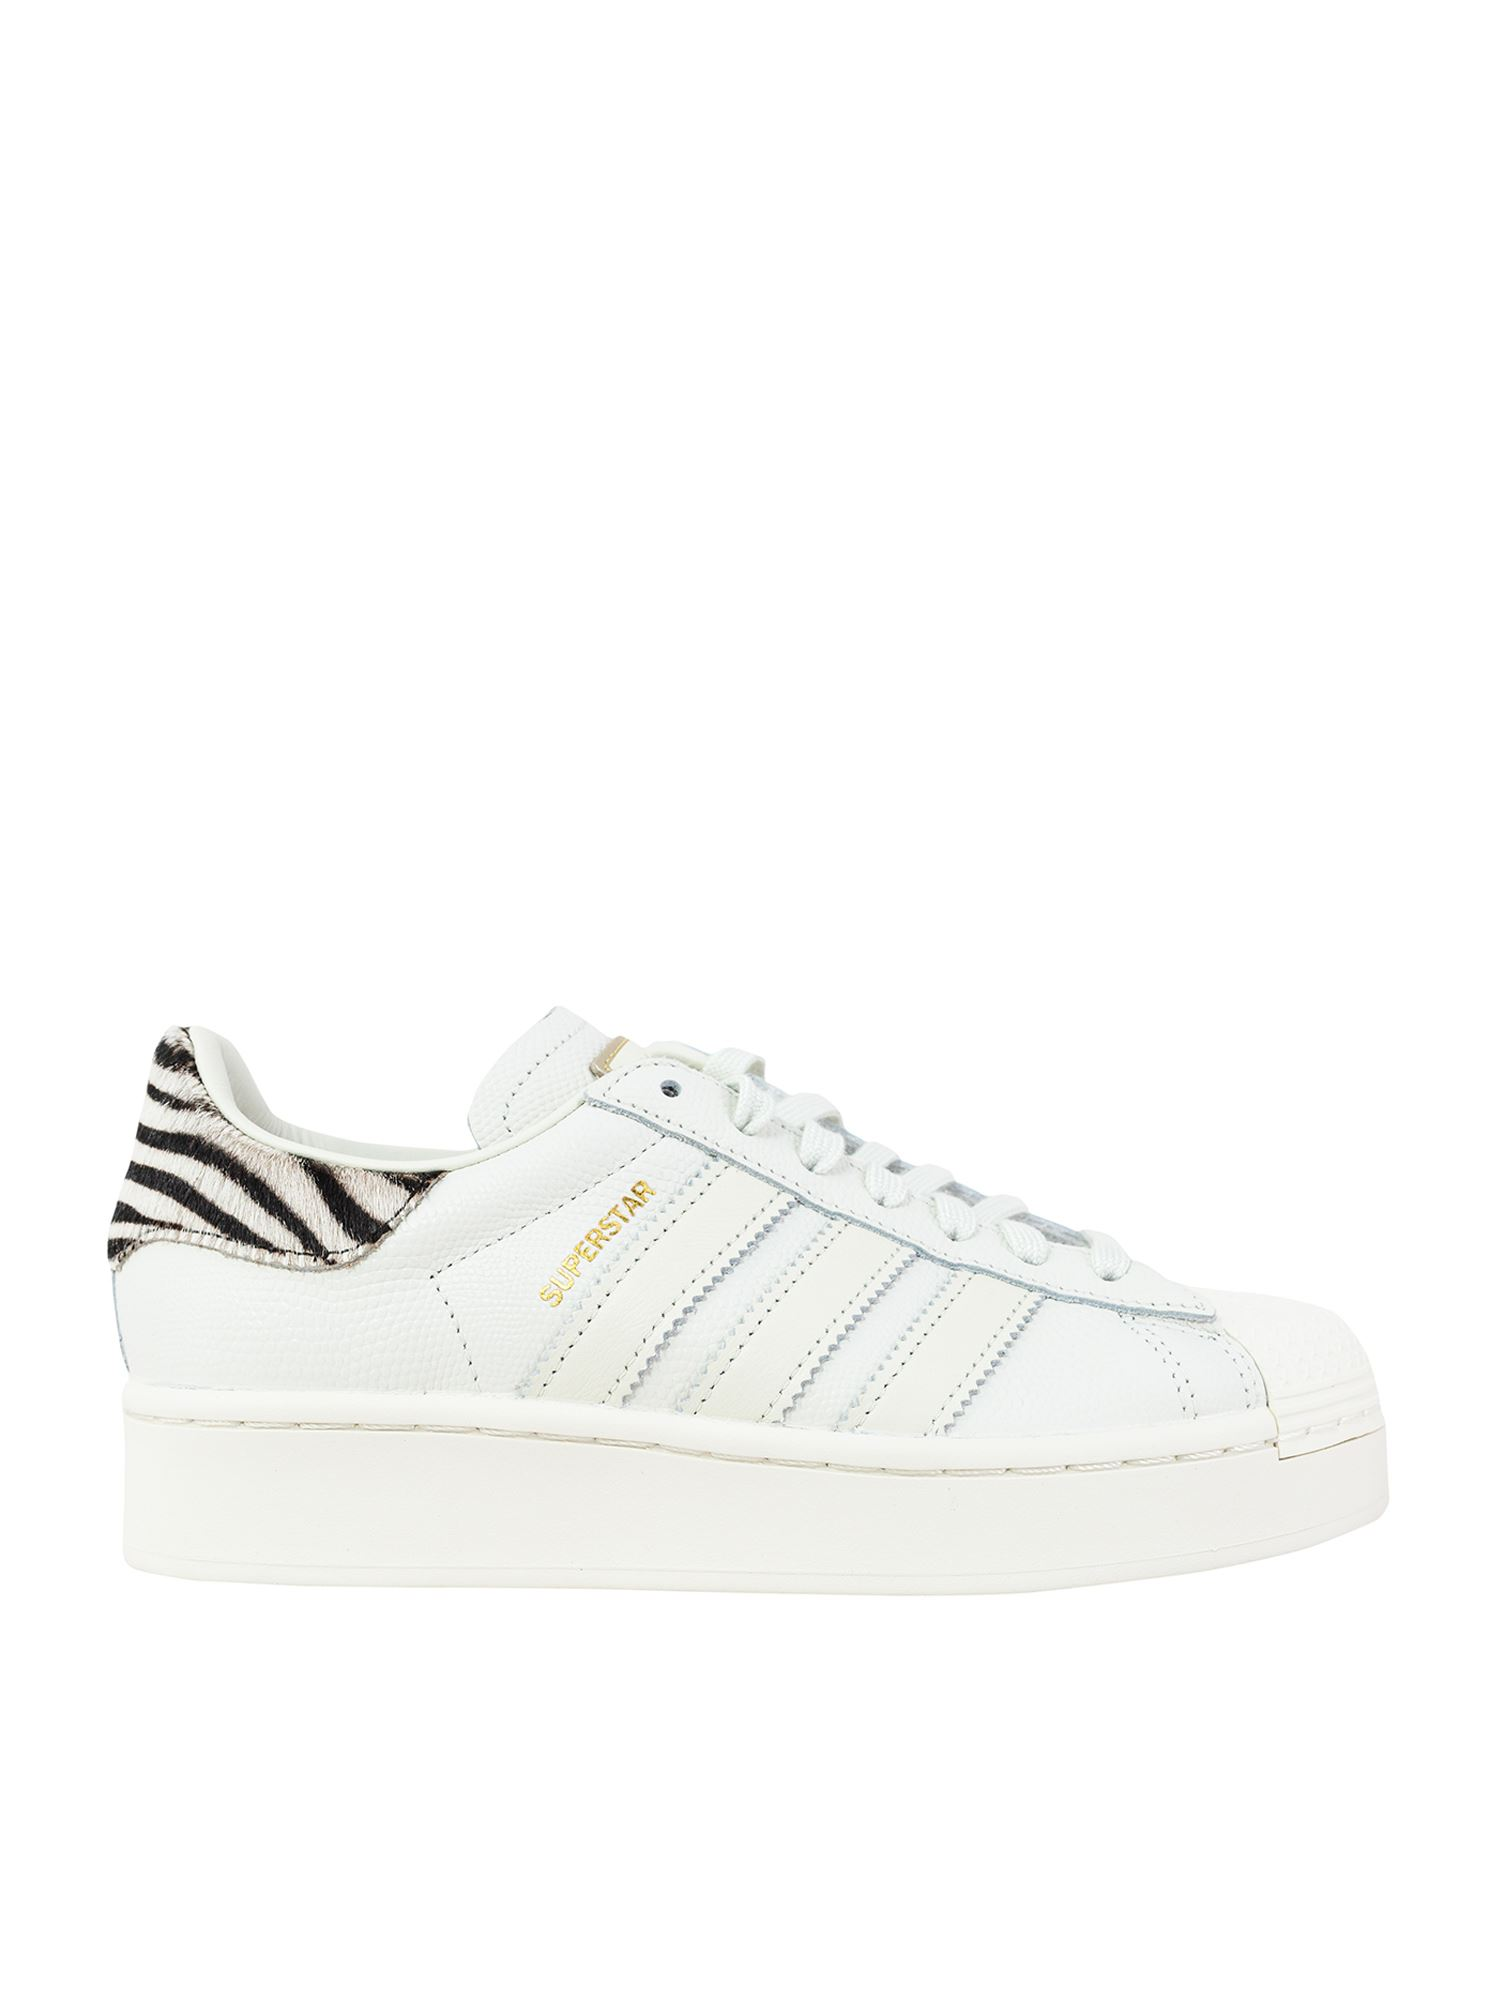 Adidas Originals ADIDAS ORIGINALS SUPERSTAR BOLD SNEAKERS IN WHITE AND ANIMALIER